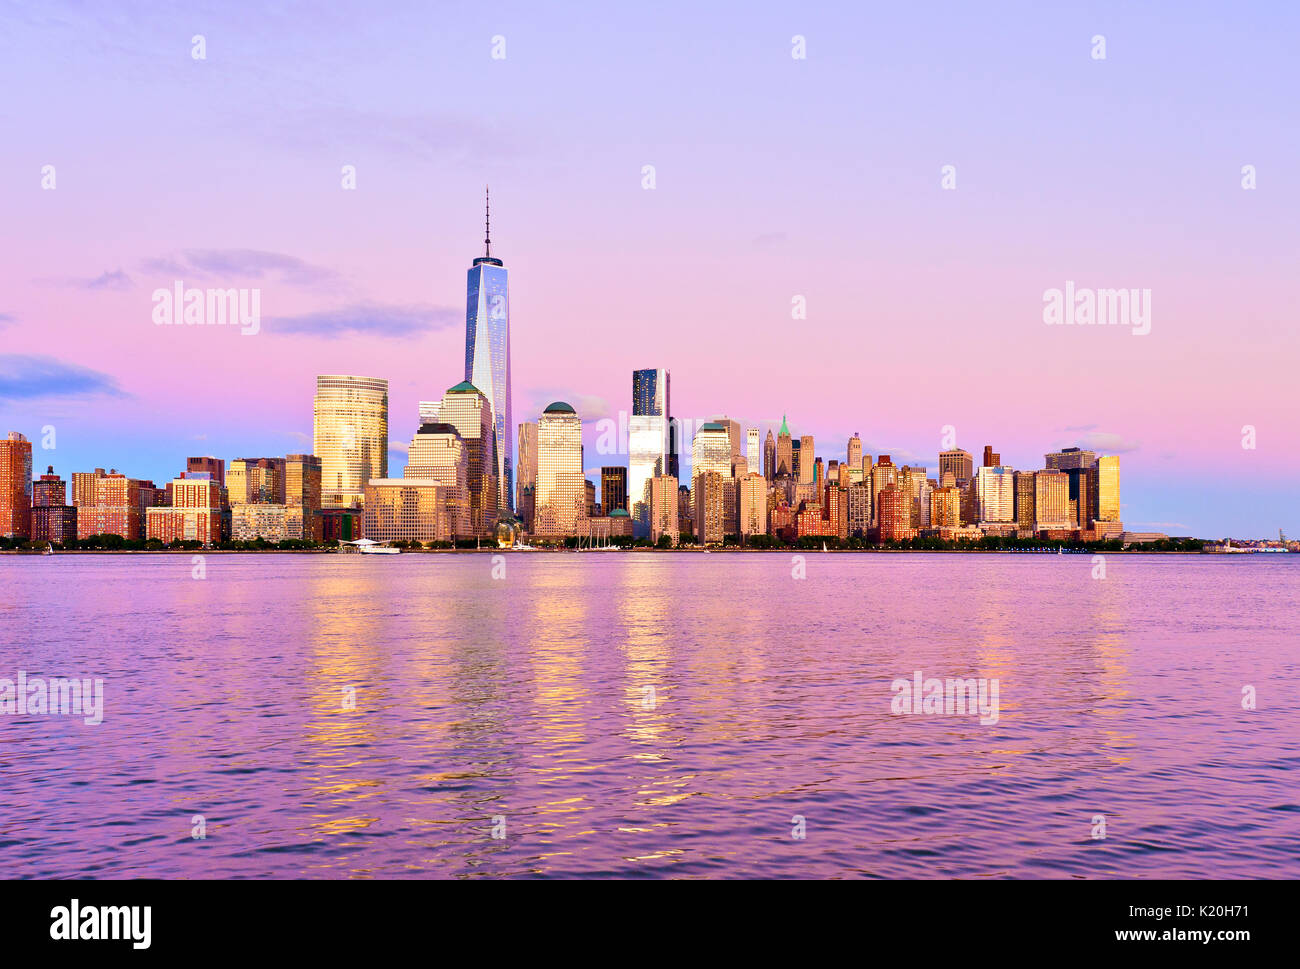 New York Skyline Freedom Tower New York City One World Trade Center Banque D'Images